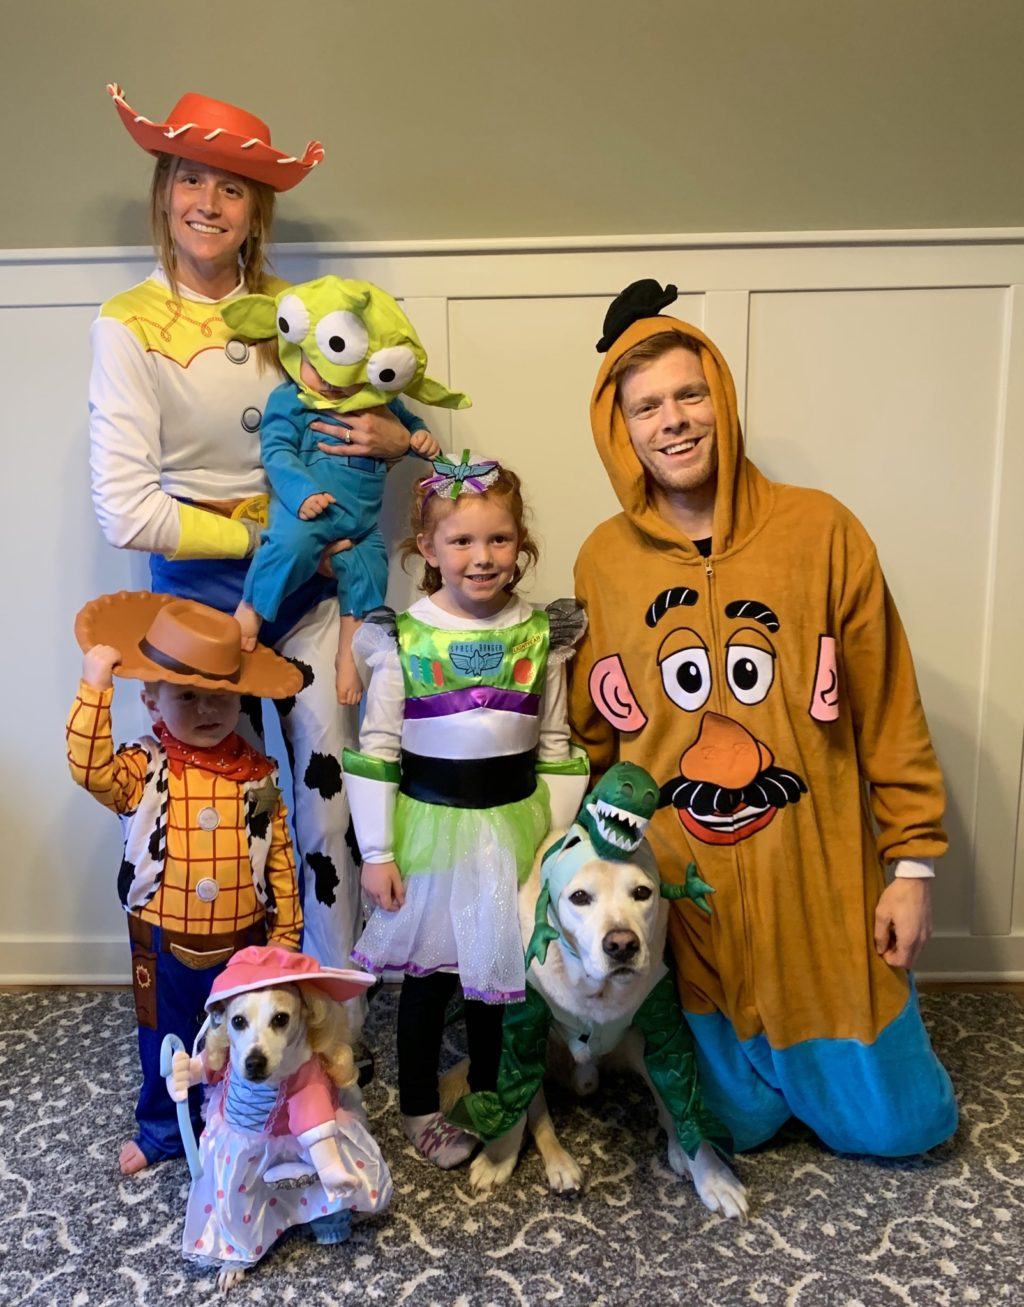 Toy Story Gang!